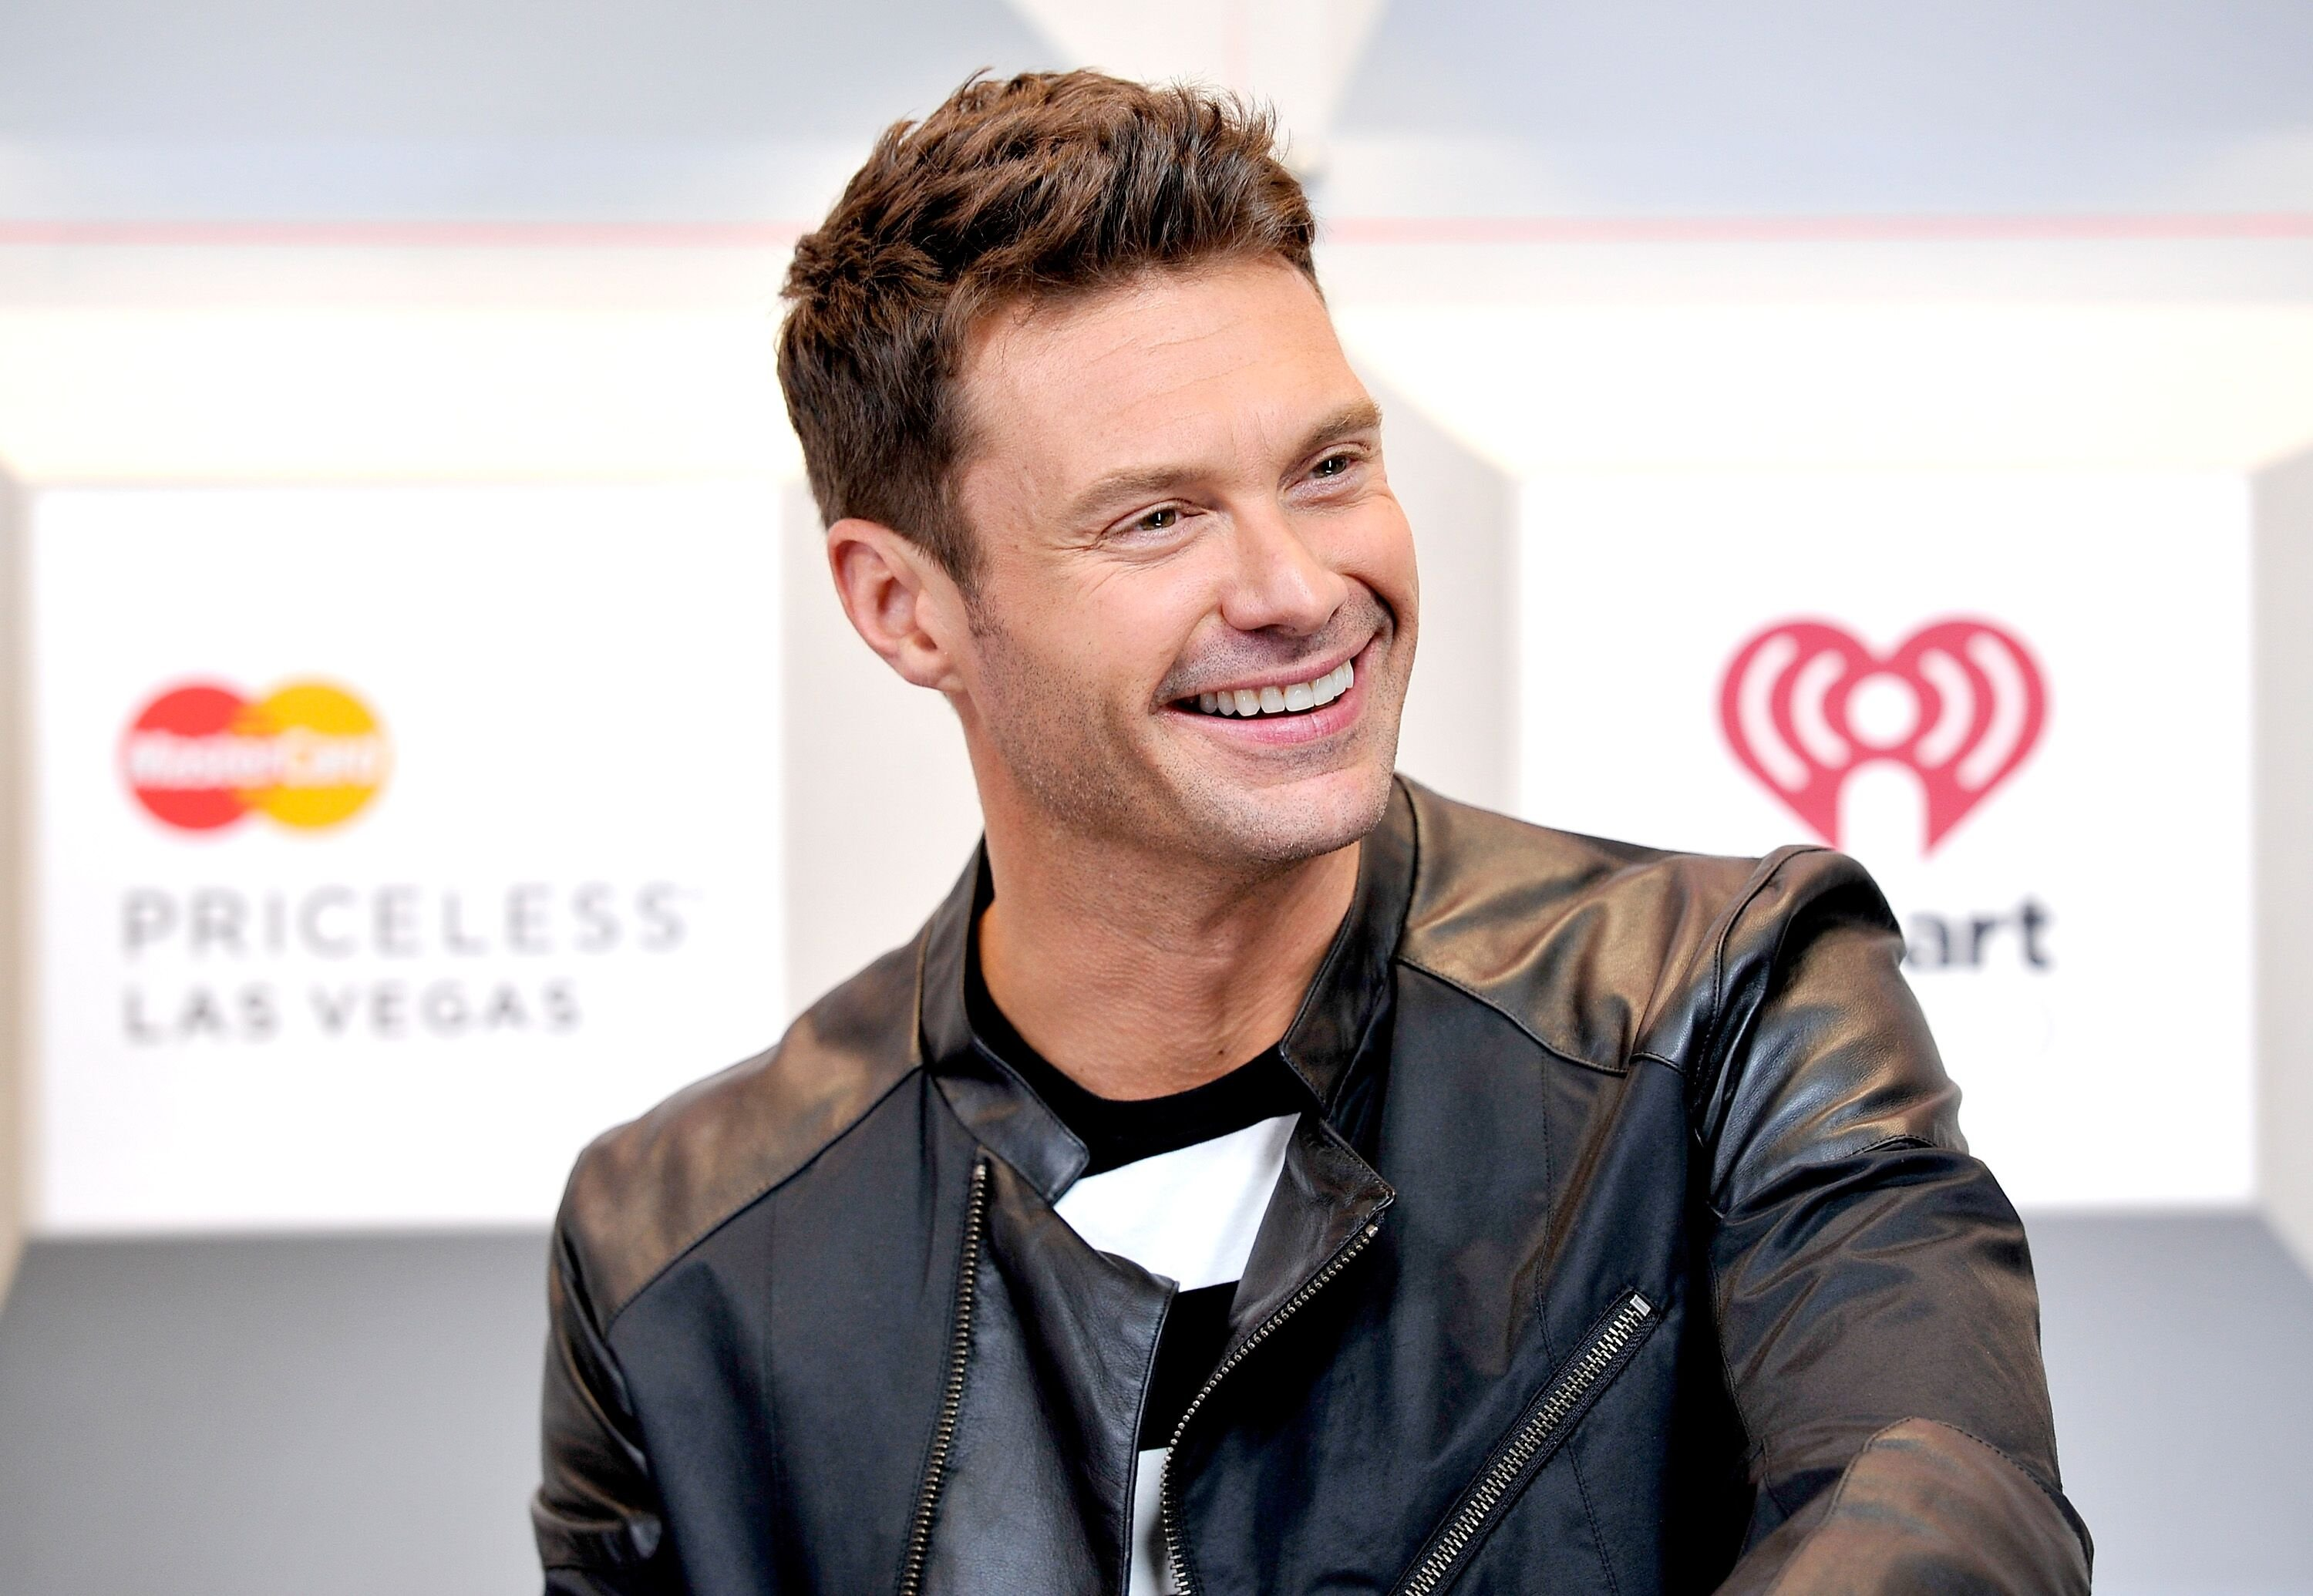 Host Ryan Seacrest attends the 2014 iHeartRadio Music Festival at the MGM Grand Garden Arena on September 19, 2014 | Photo: Getty Images